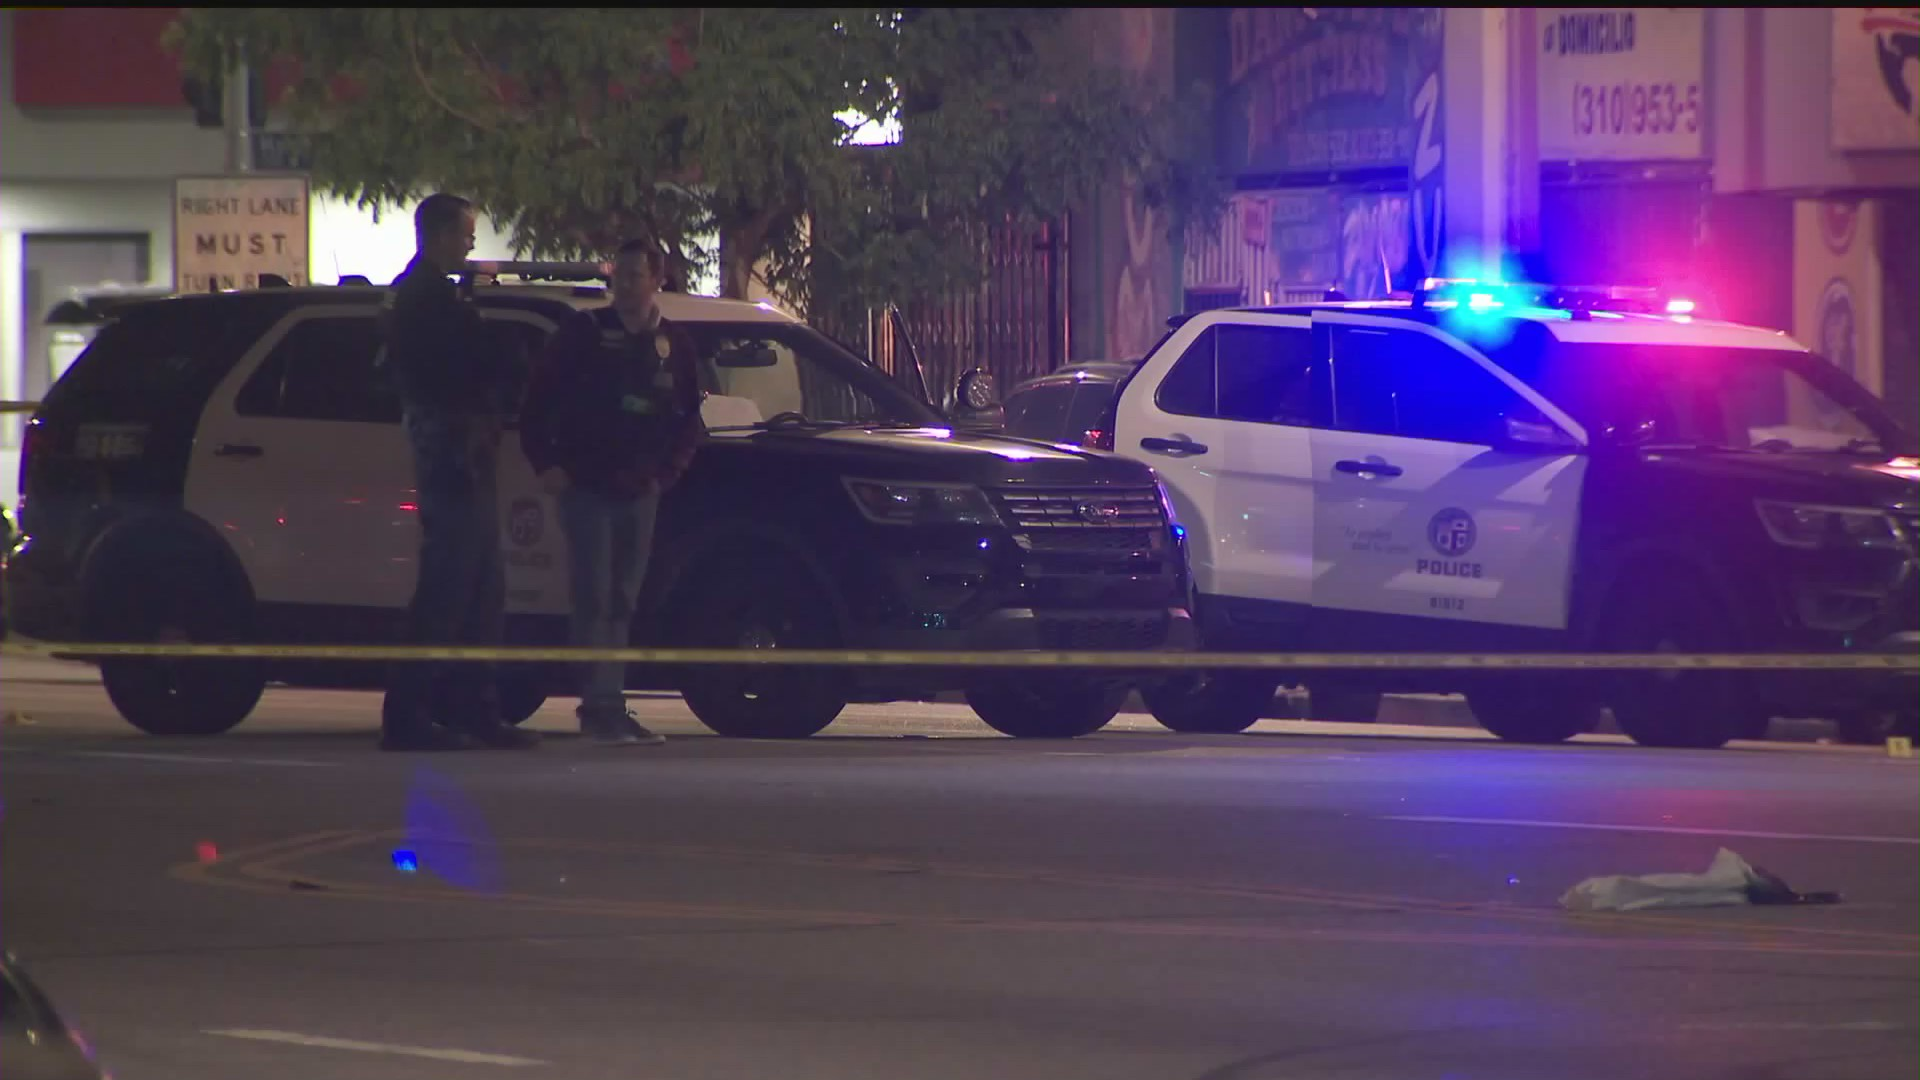 Police investigate a shooting in South Los Angeles on June 3, 2020. (KTLA)